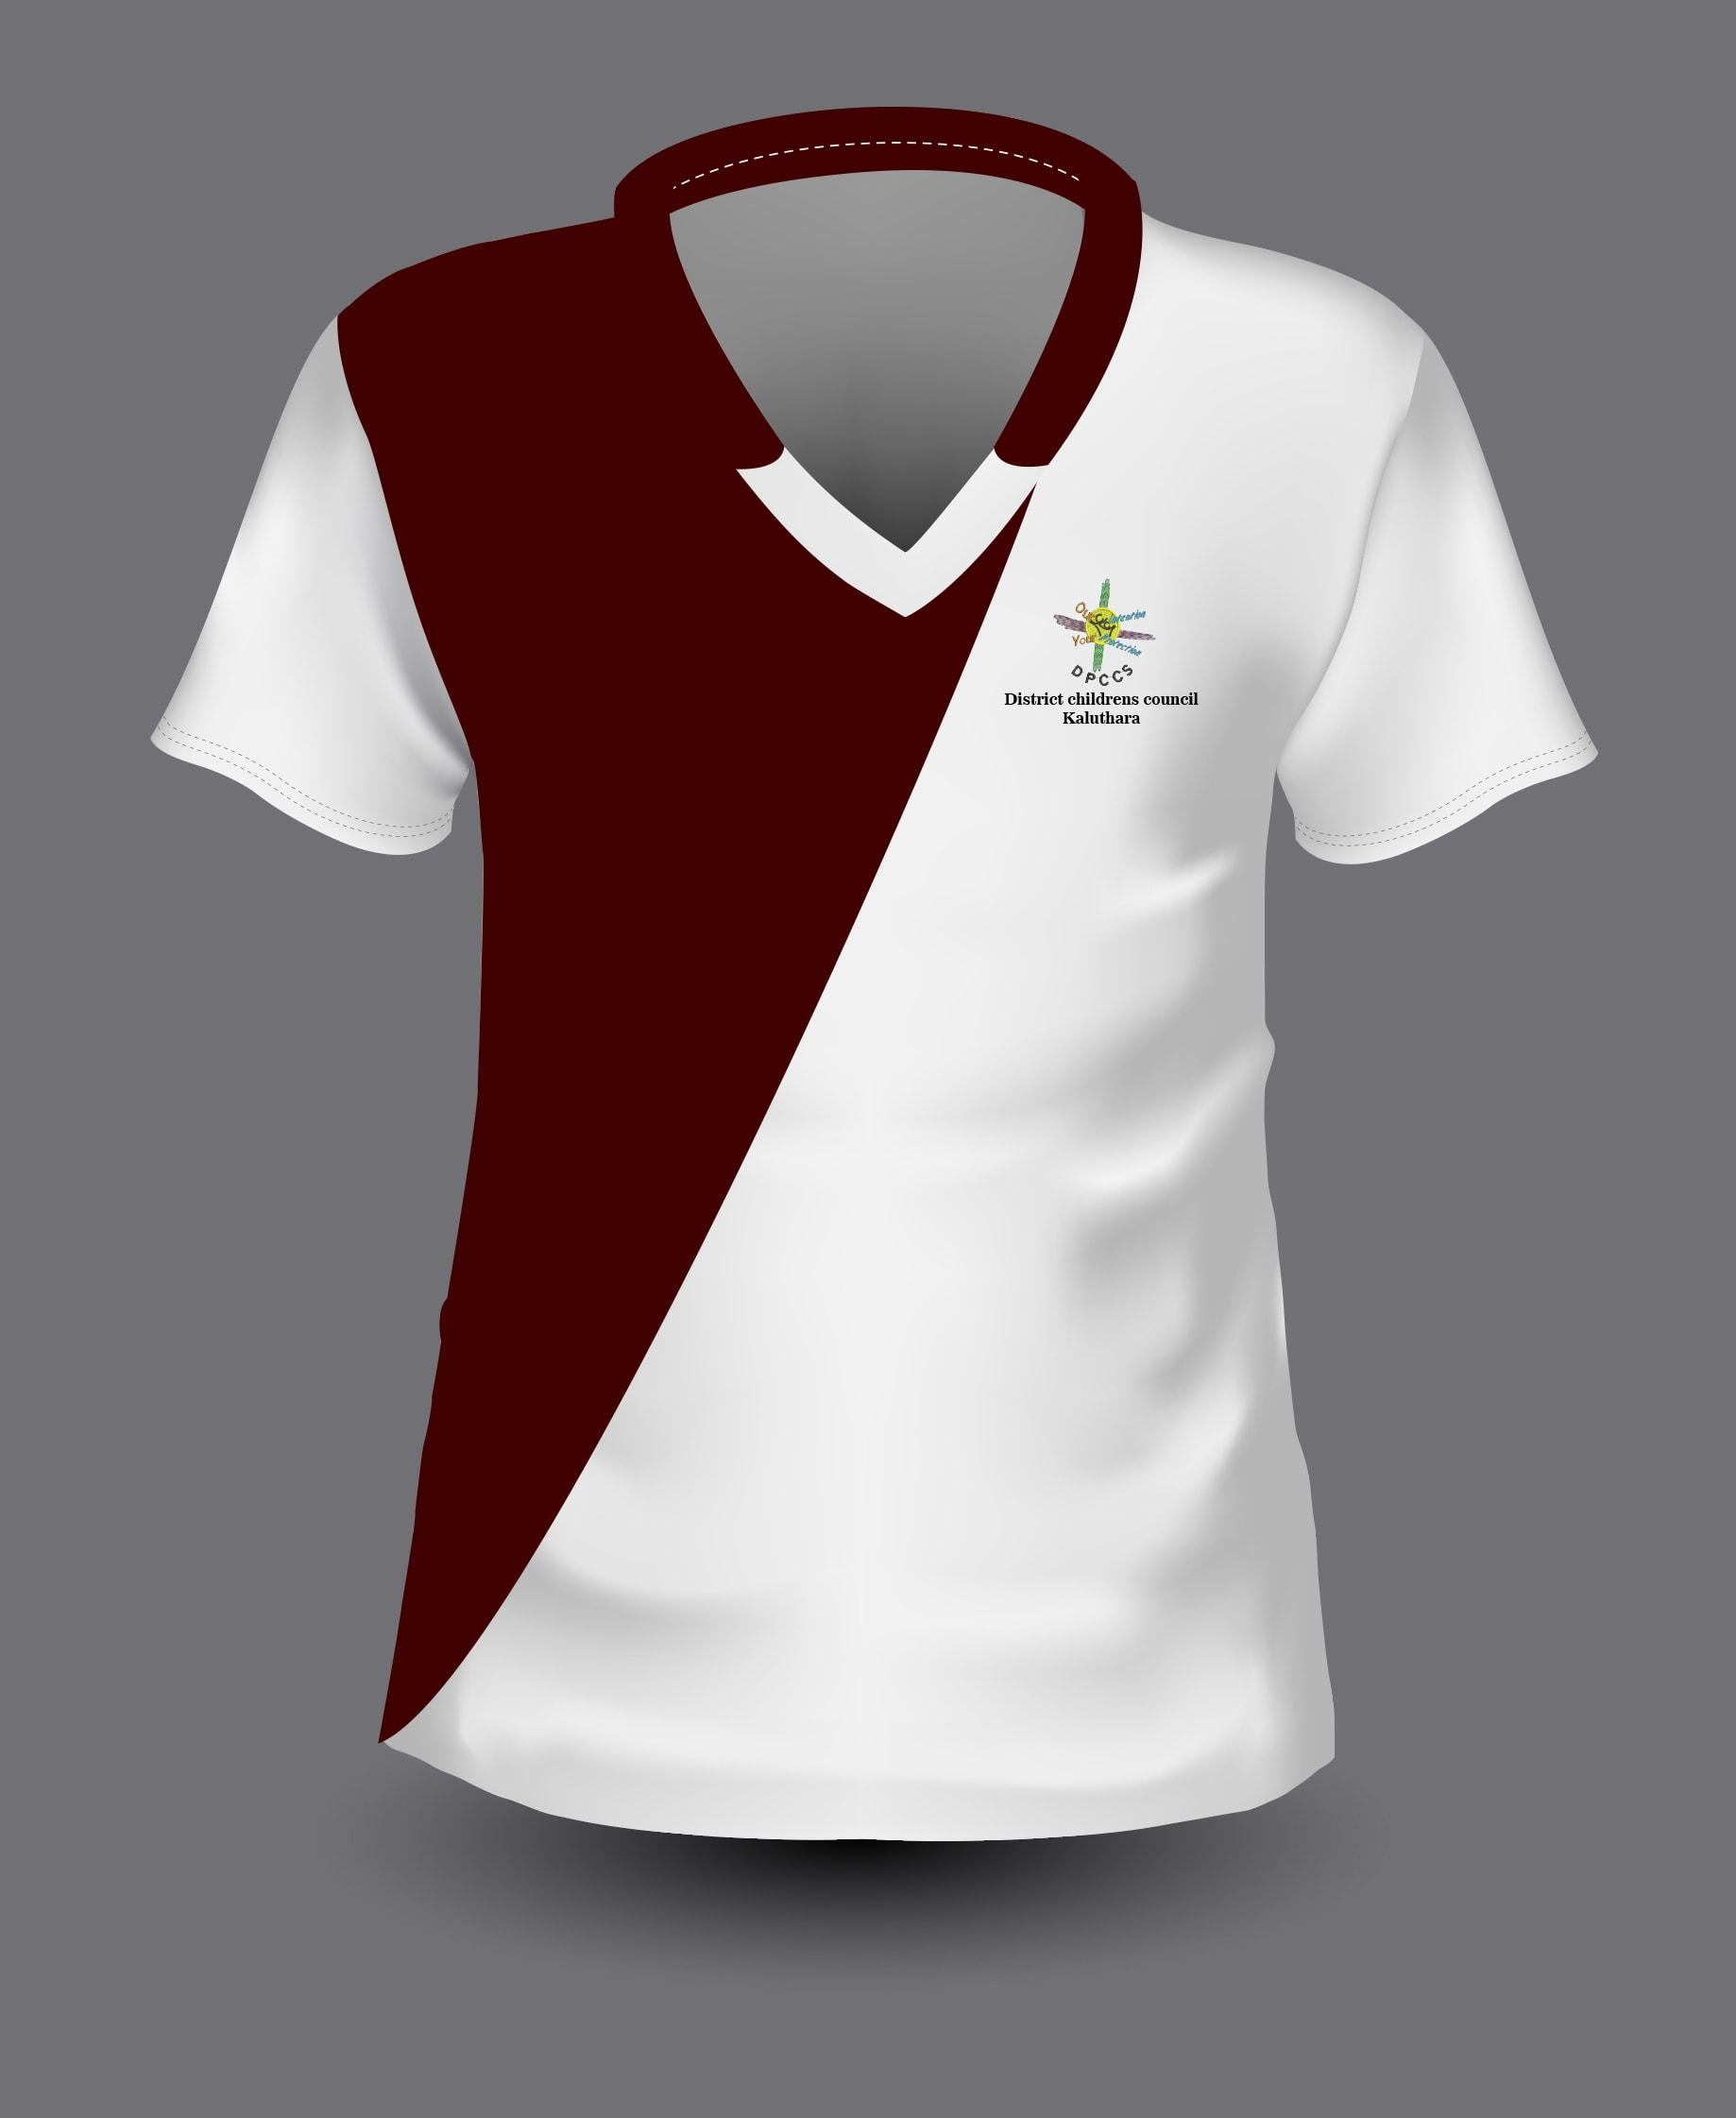 c7bc7fd77 Custom Polo Shirt Design Online - DREAMWORKS